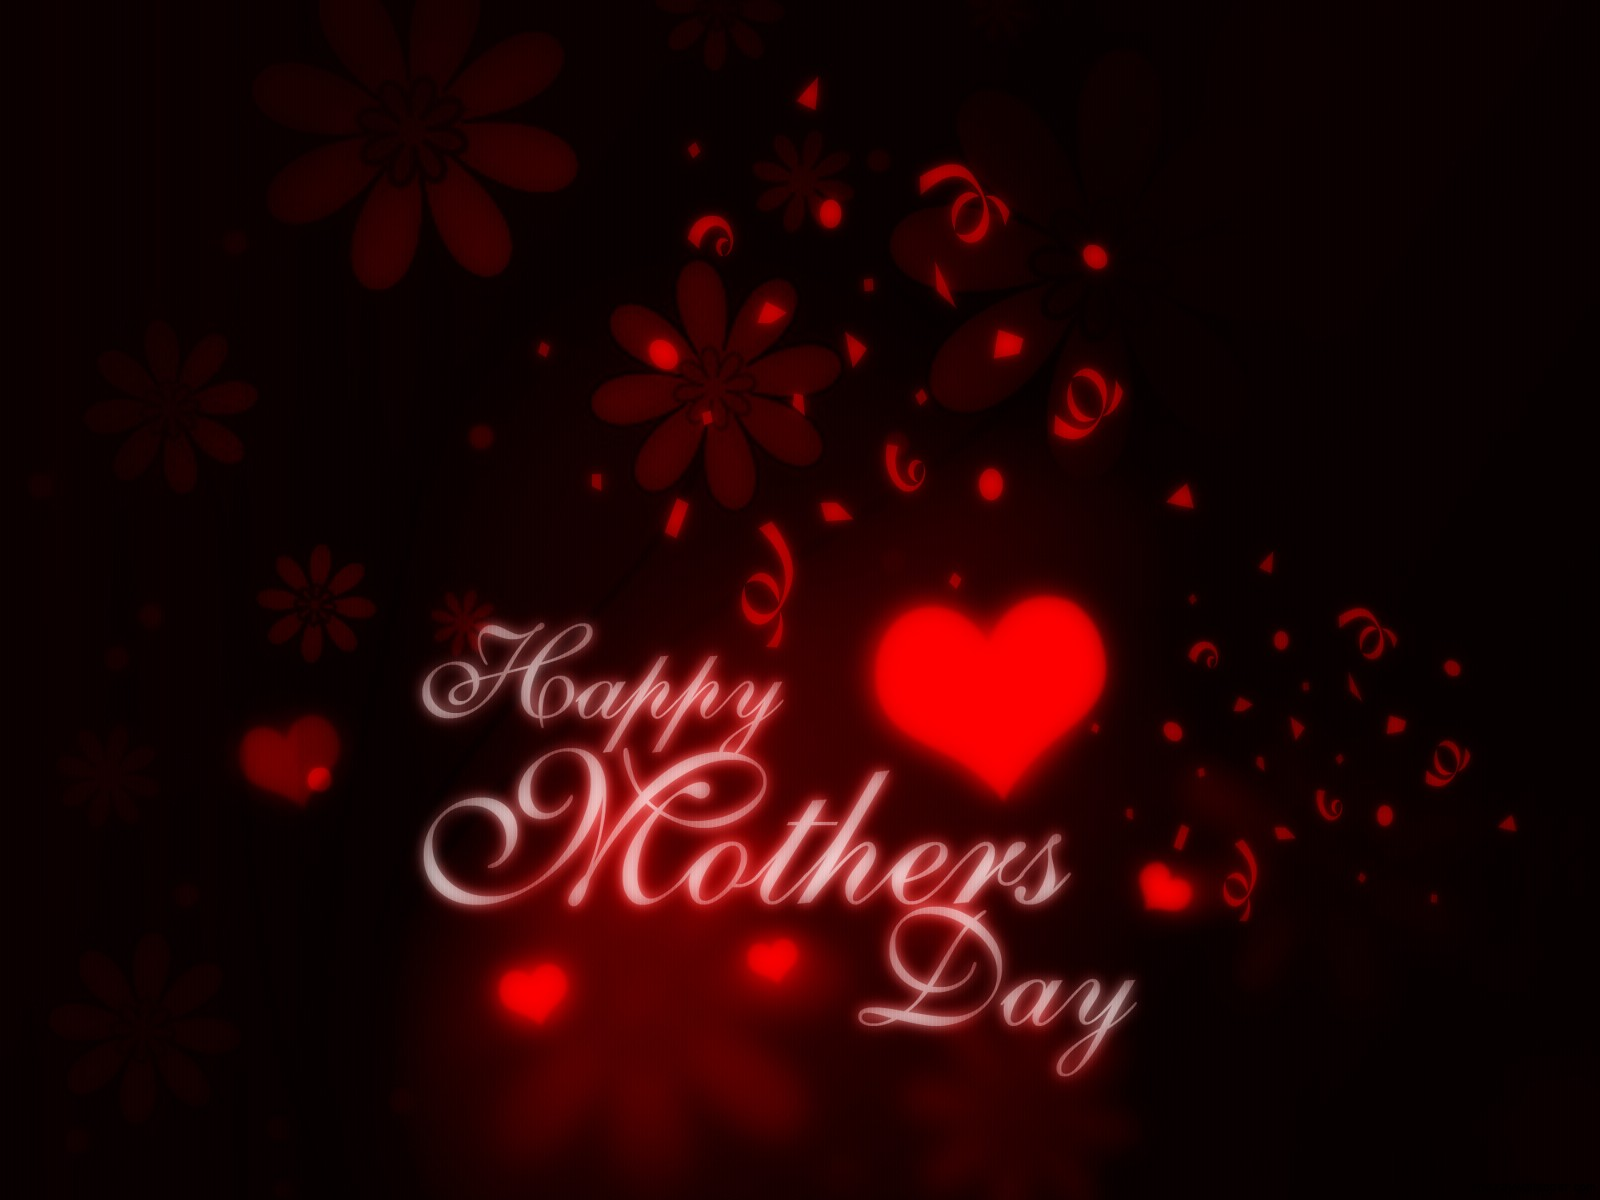 1000 Whatsapp DP Images Profile Pictures - iEnglish Status Sad mothers day pictures